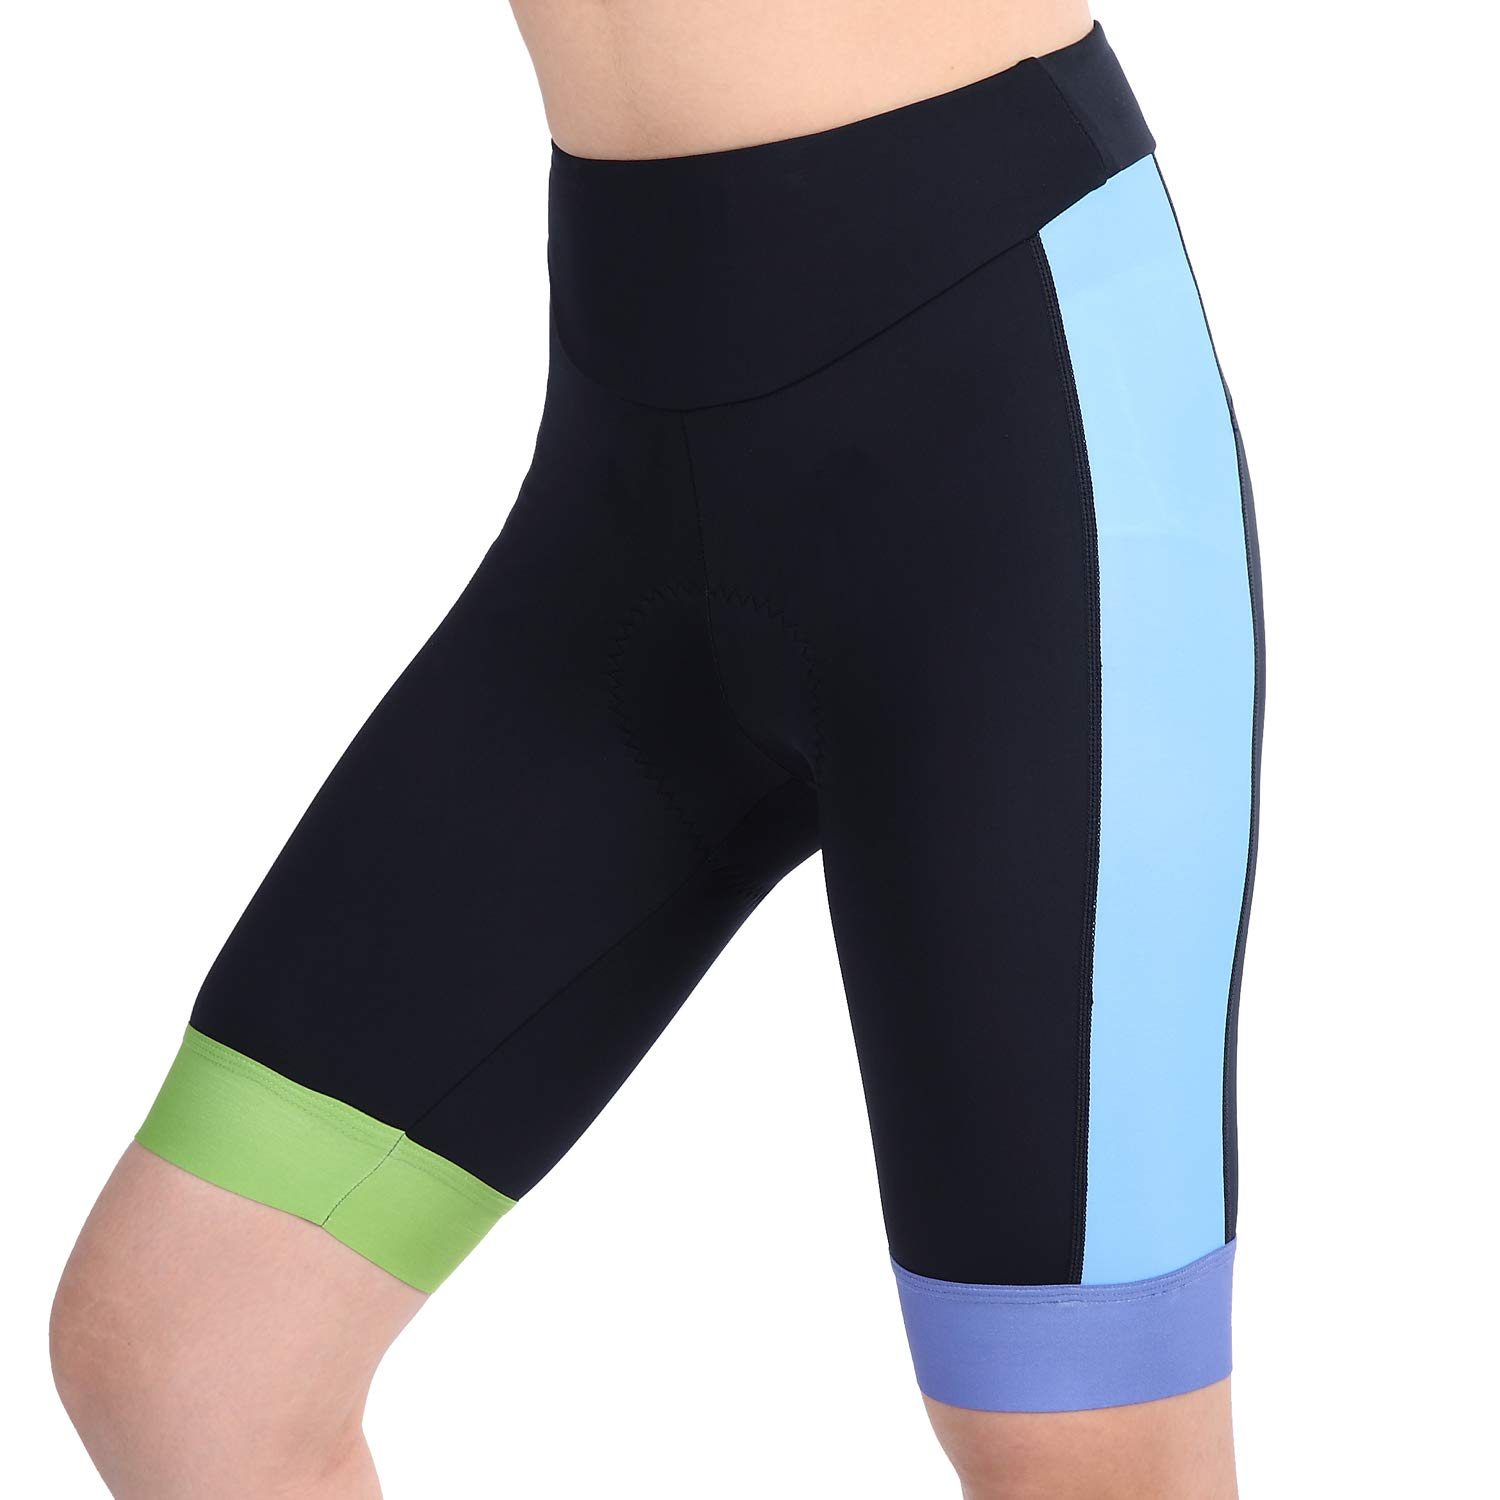 8cbdfd7e4d326c Fabric Material: 80% Nylon& 20% Spandex for cycling shorts. Breathable and  comfortable fabric wicks quickly away moisture and keeps you dry during  biking